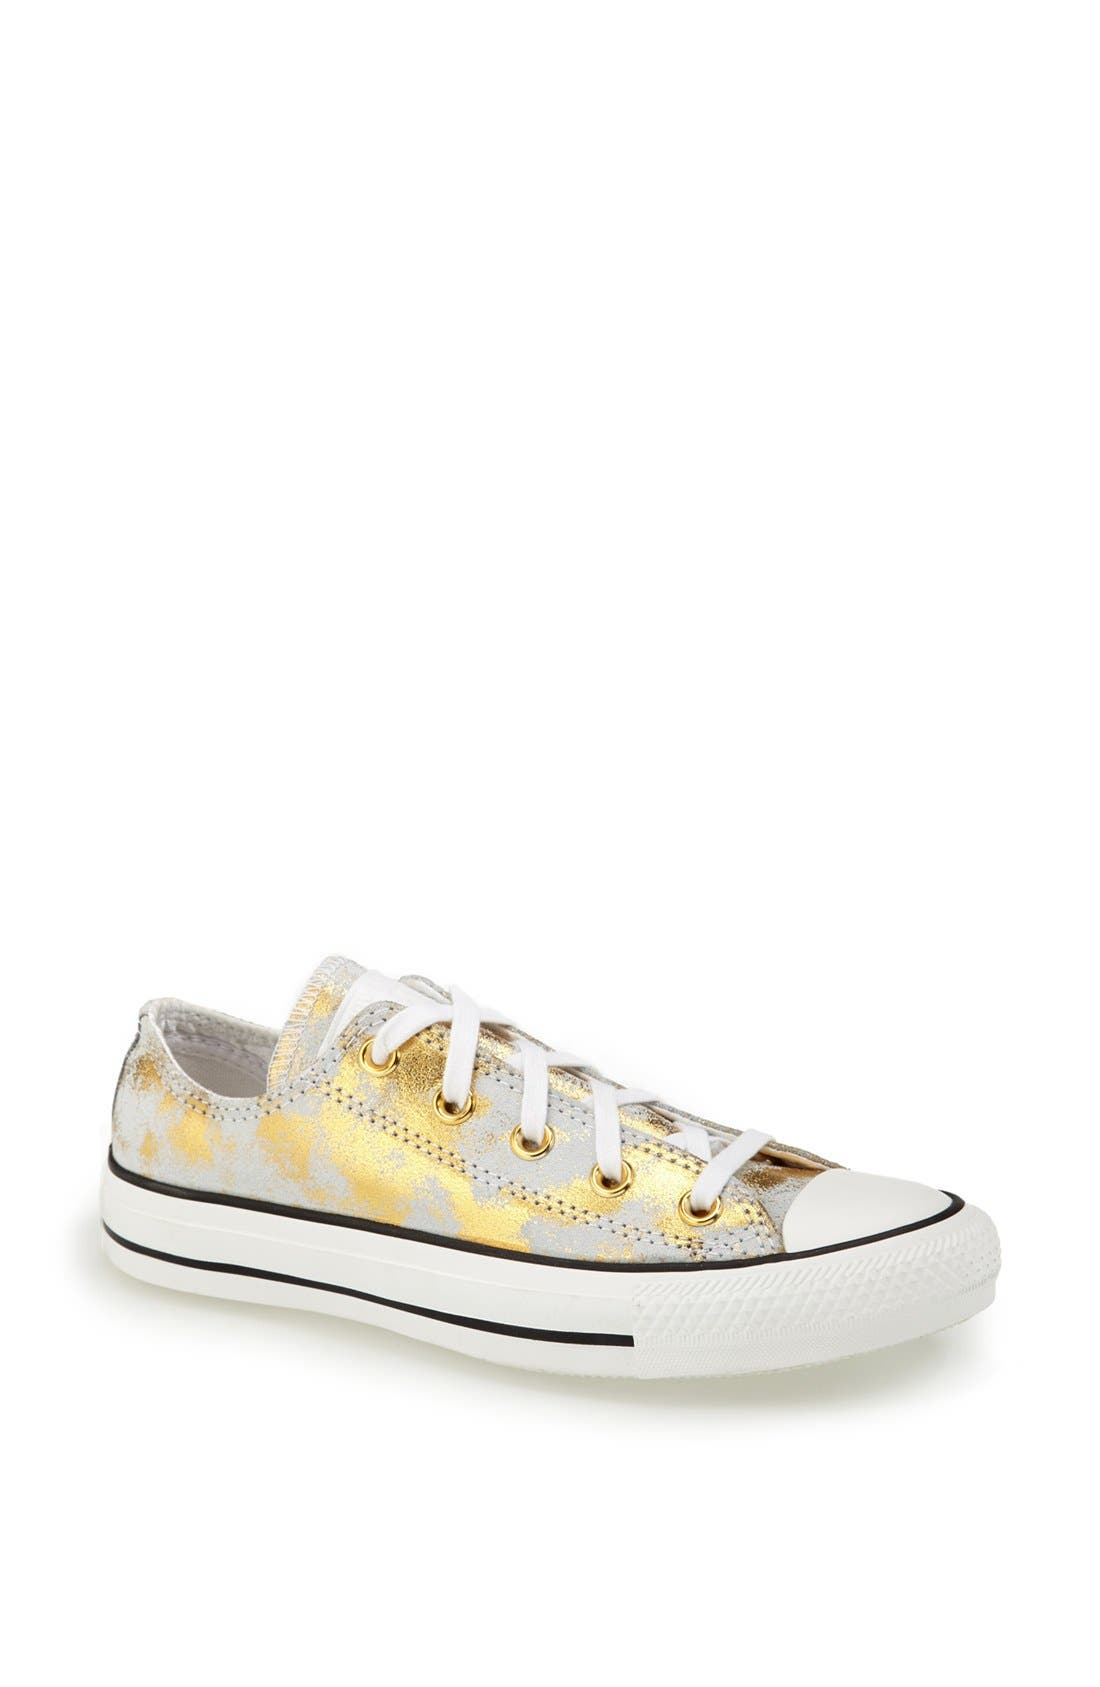 Main Image - Converse Chuck Taylor® All Star® Low Sneaker (Women)